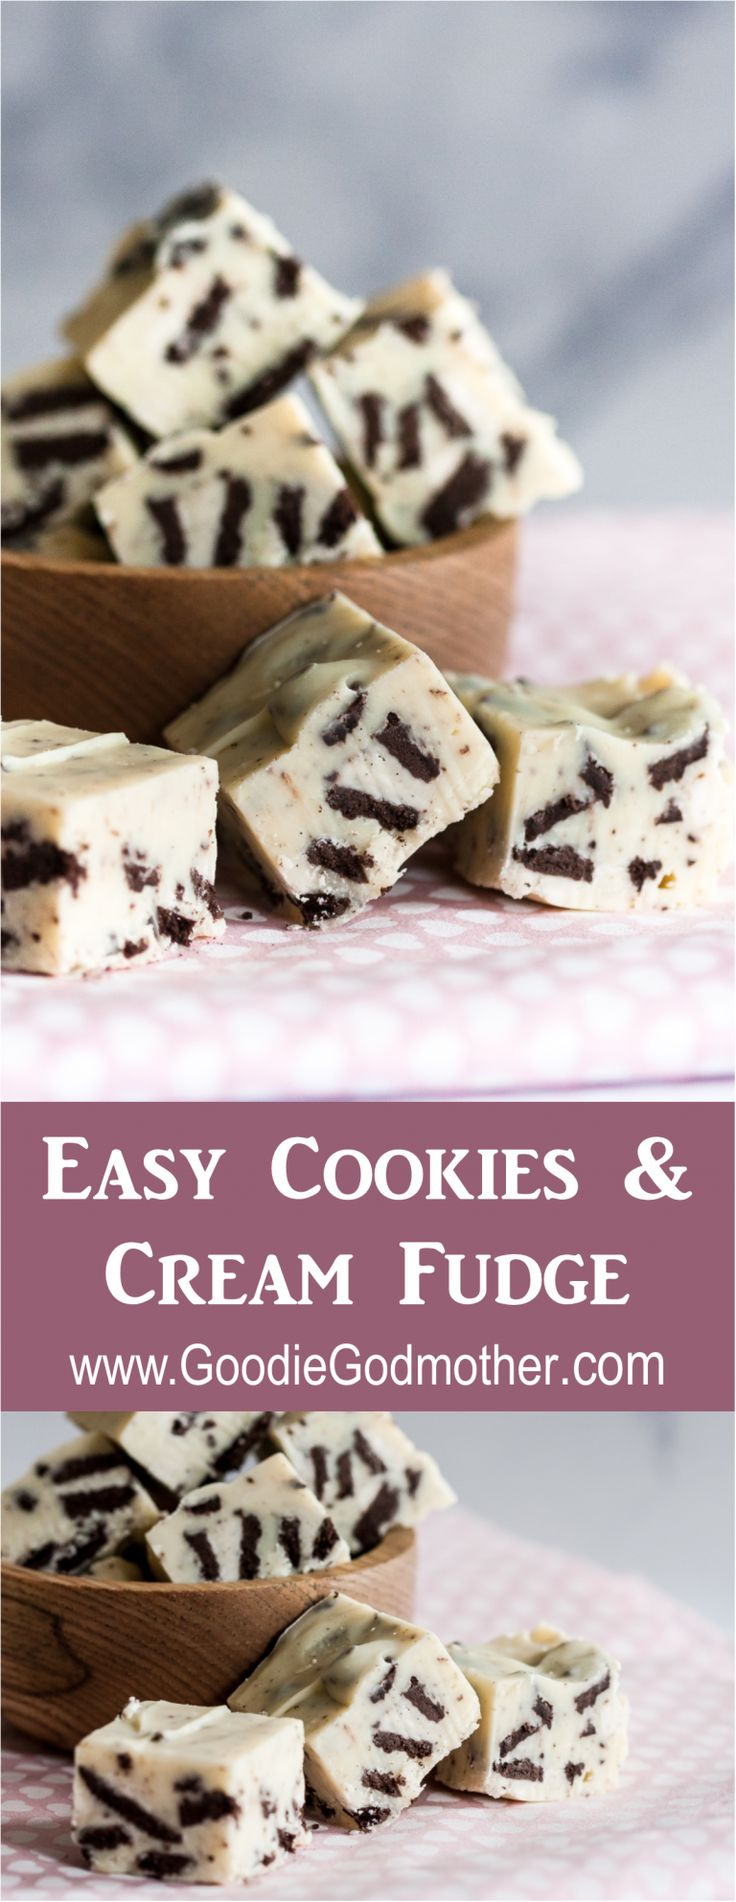 With just 4 ingredients and a few minutes, you can whip up this crowd-pleasing easy cookies and cream fudge! This easy fudge recipe is perfect for parties or a sweet edible gift. * GoodieGodmother.com